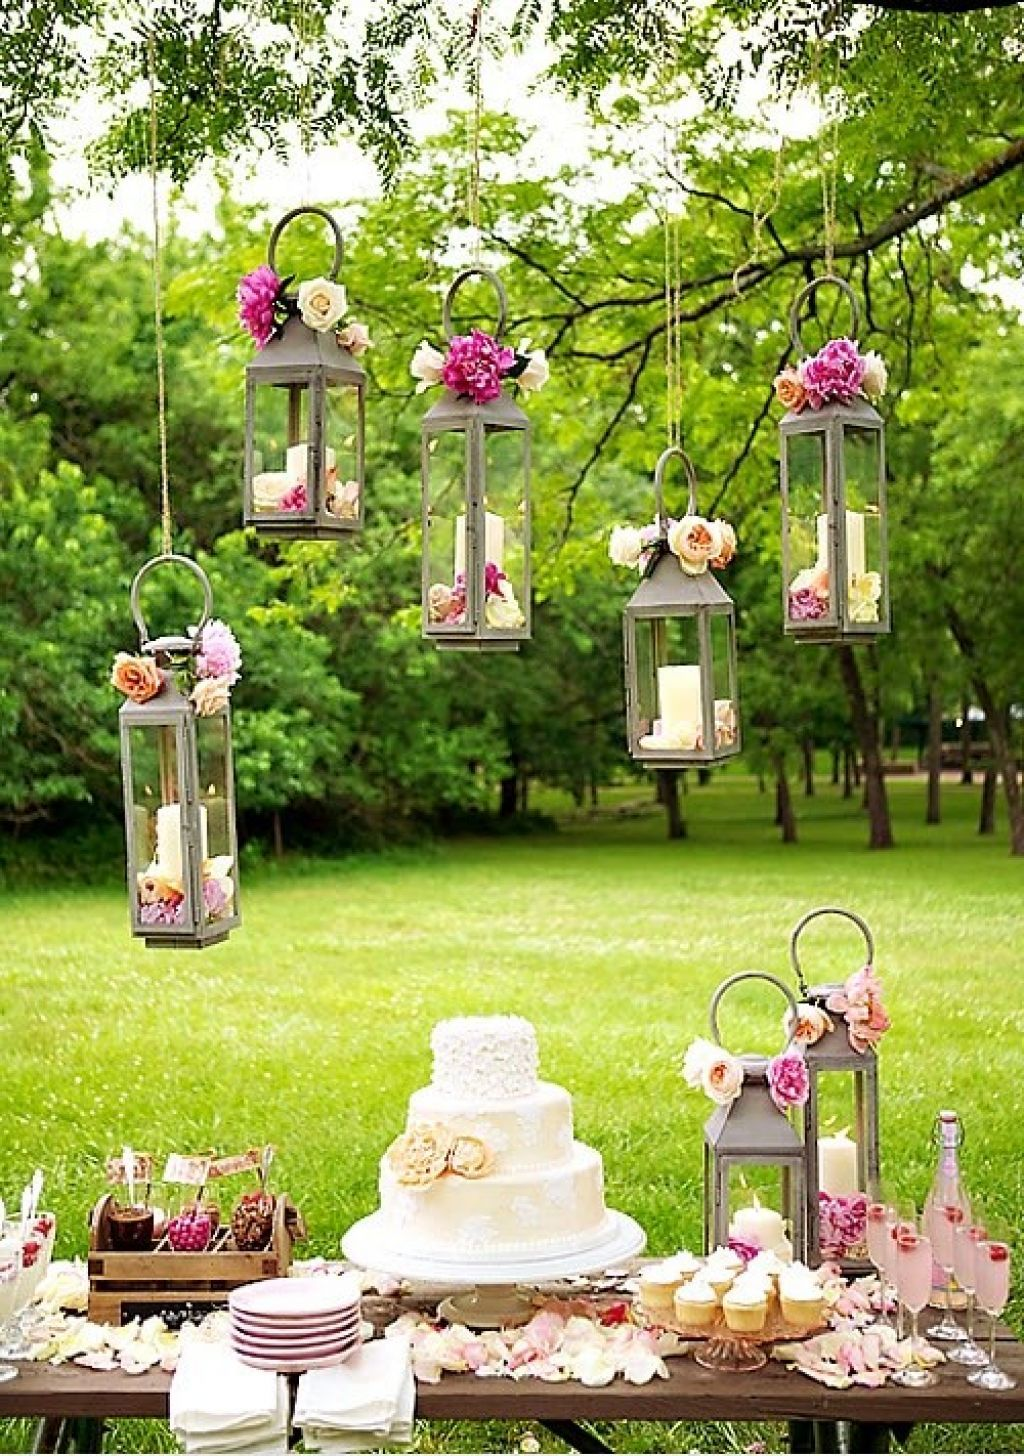 garden party ideas - Google Search | Creative Decorations ...